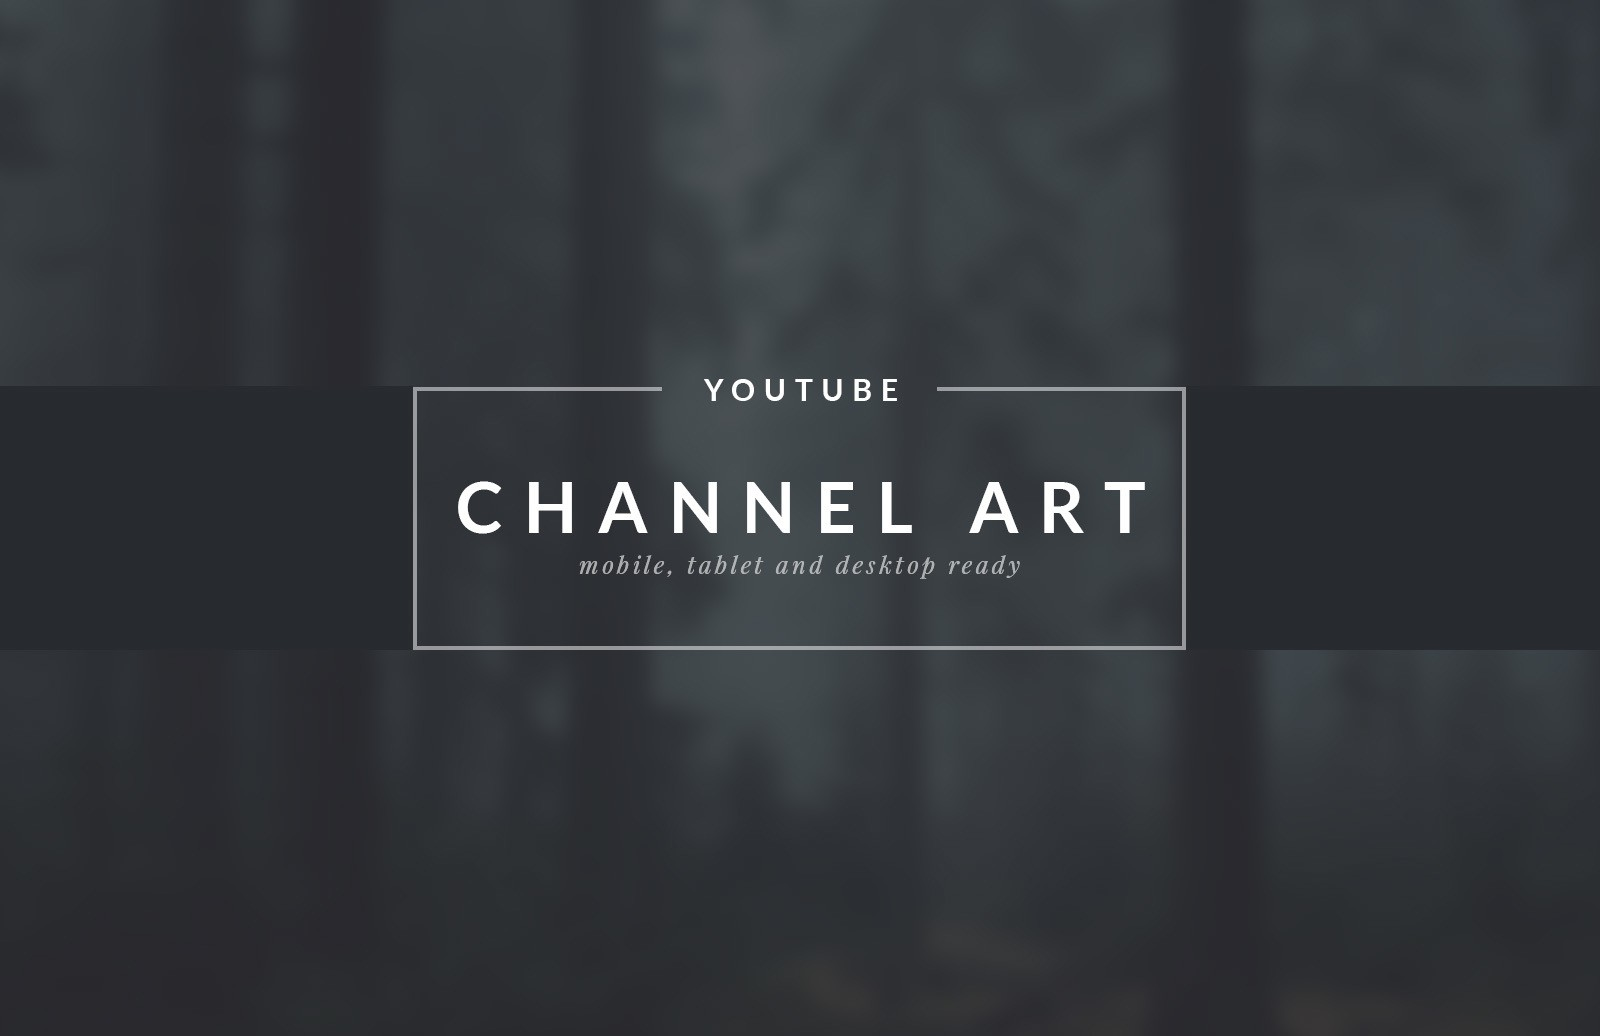 Youtube channel art templates medialoot you tube channel art preview 1 pronofoot35fo Images